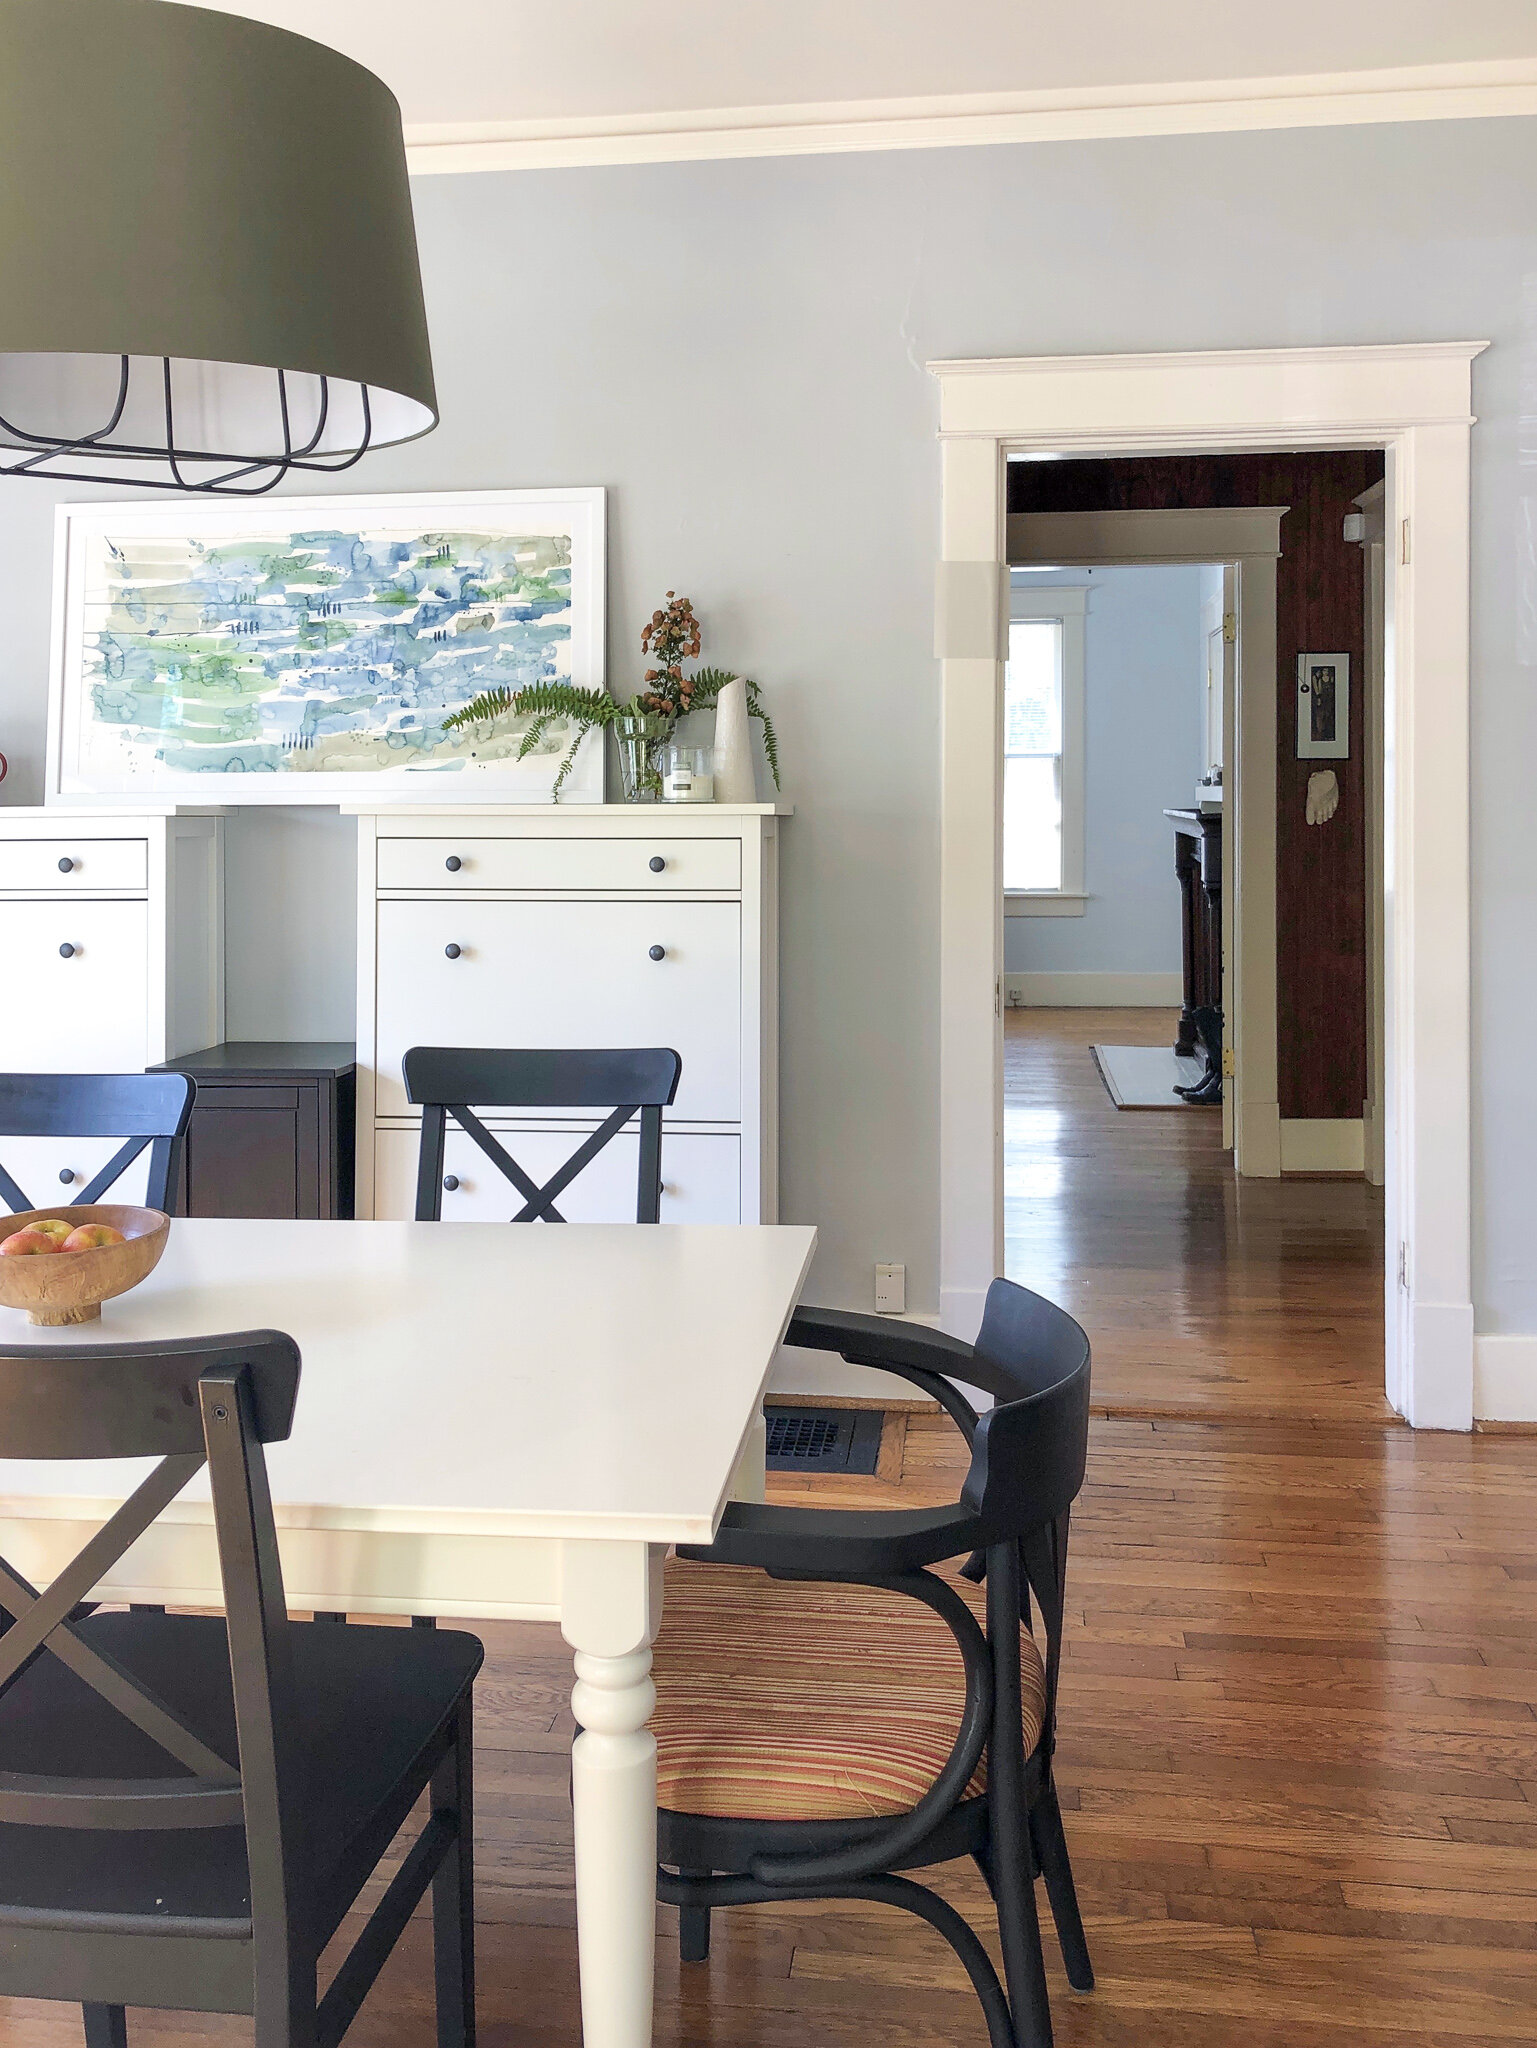 Vintage Cottage Style - A California Bungalow in Nashville TN gets the designer touch on a serious budget. After years of neglect from landlords, this California Bungalow is being lovingly restored to its former glory with touches of industrial and schoolhouse style. The result is a casual look for a busy family with lots of heirlooms. #californiacasual #cottagesandbungalows #bungalowstyle #cottagestyle #industriallighting #nashvilletn #historicpreservation #abmlifeisbeautiful